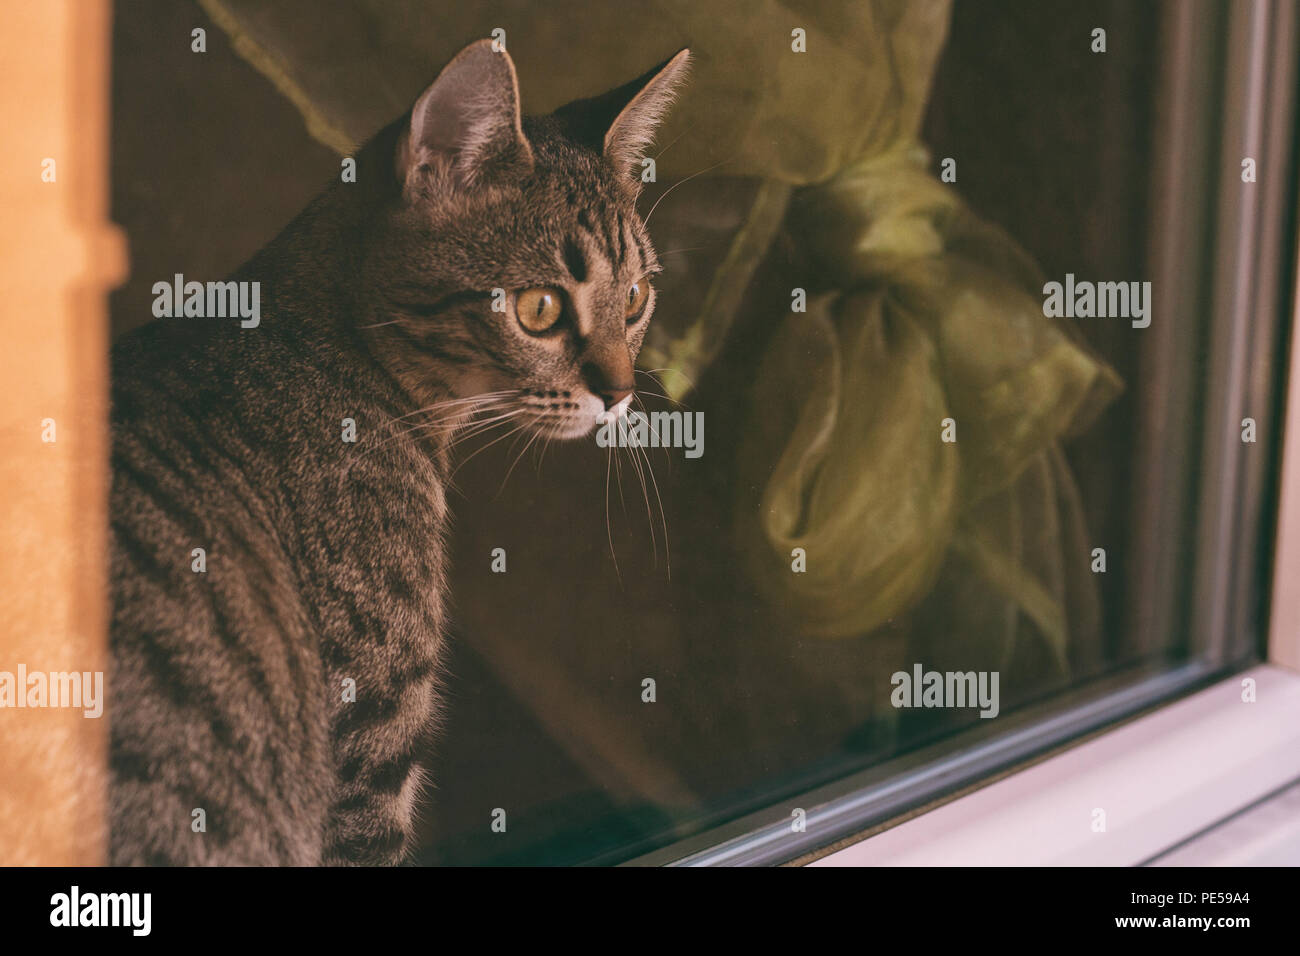 Beautiful cat looking through window.Image is intentionally toned. - Stock Image